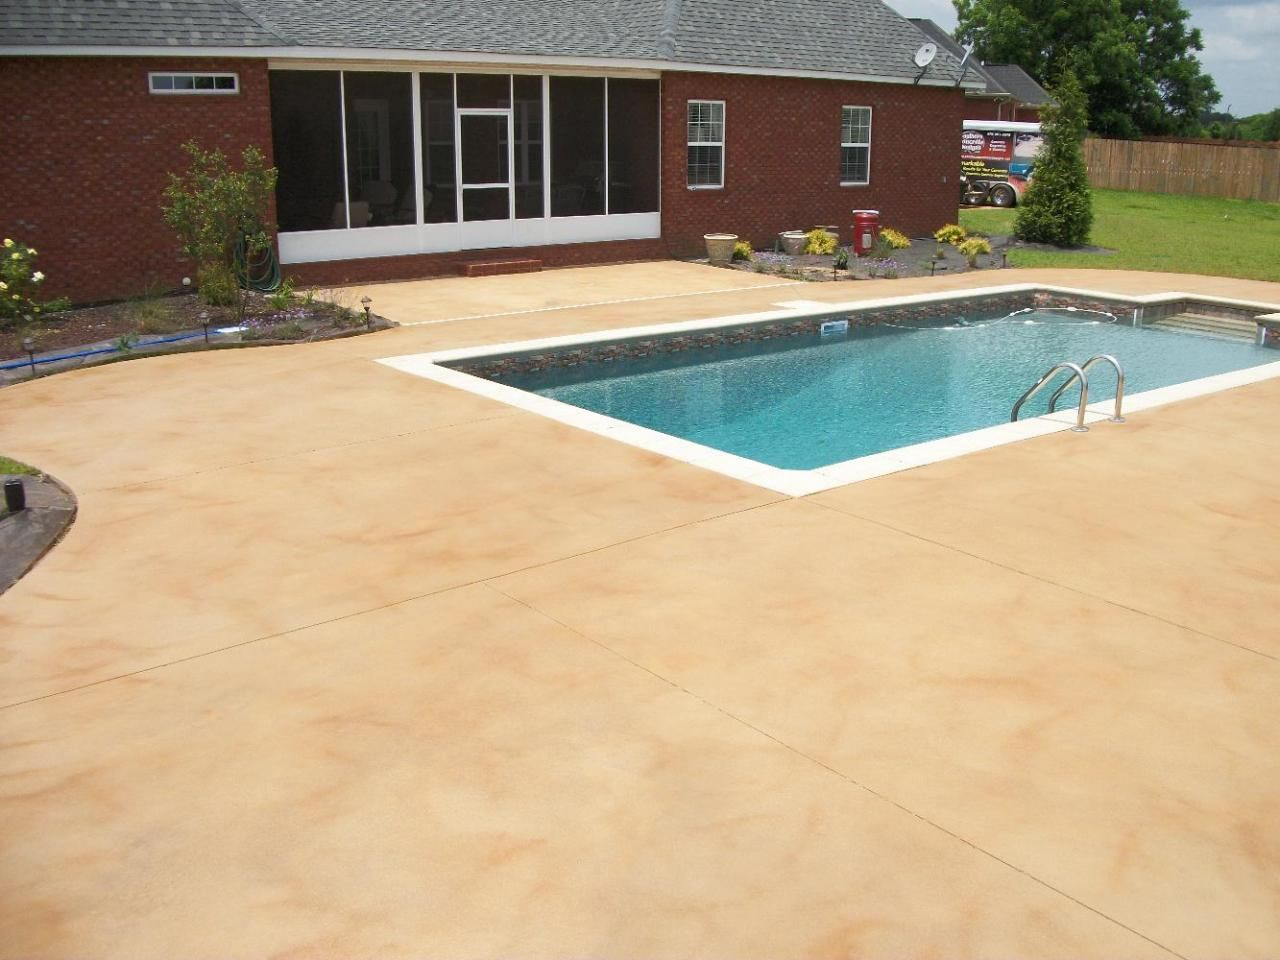 Photo Gallery 3 Concrete Stain Patio Swimming Pool Decks